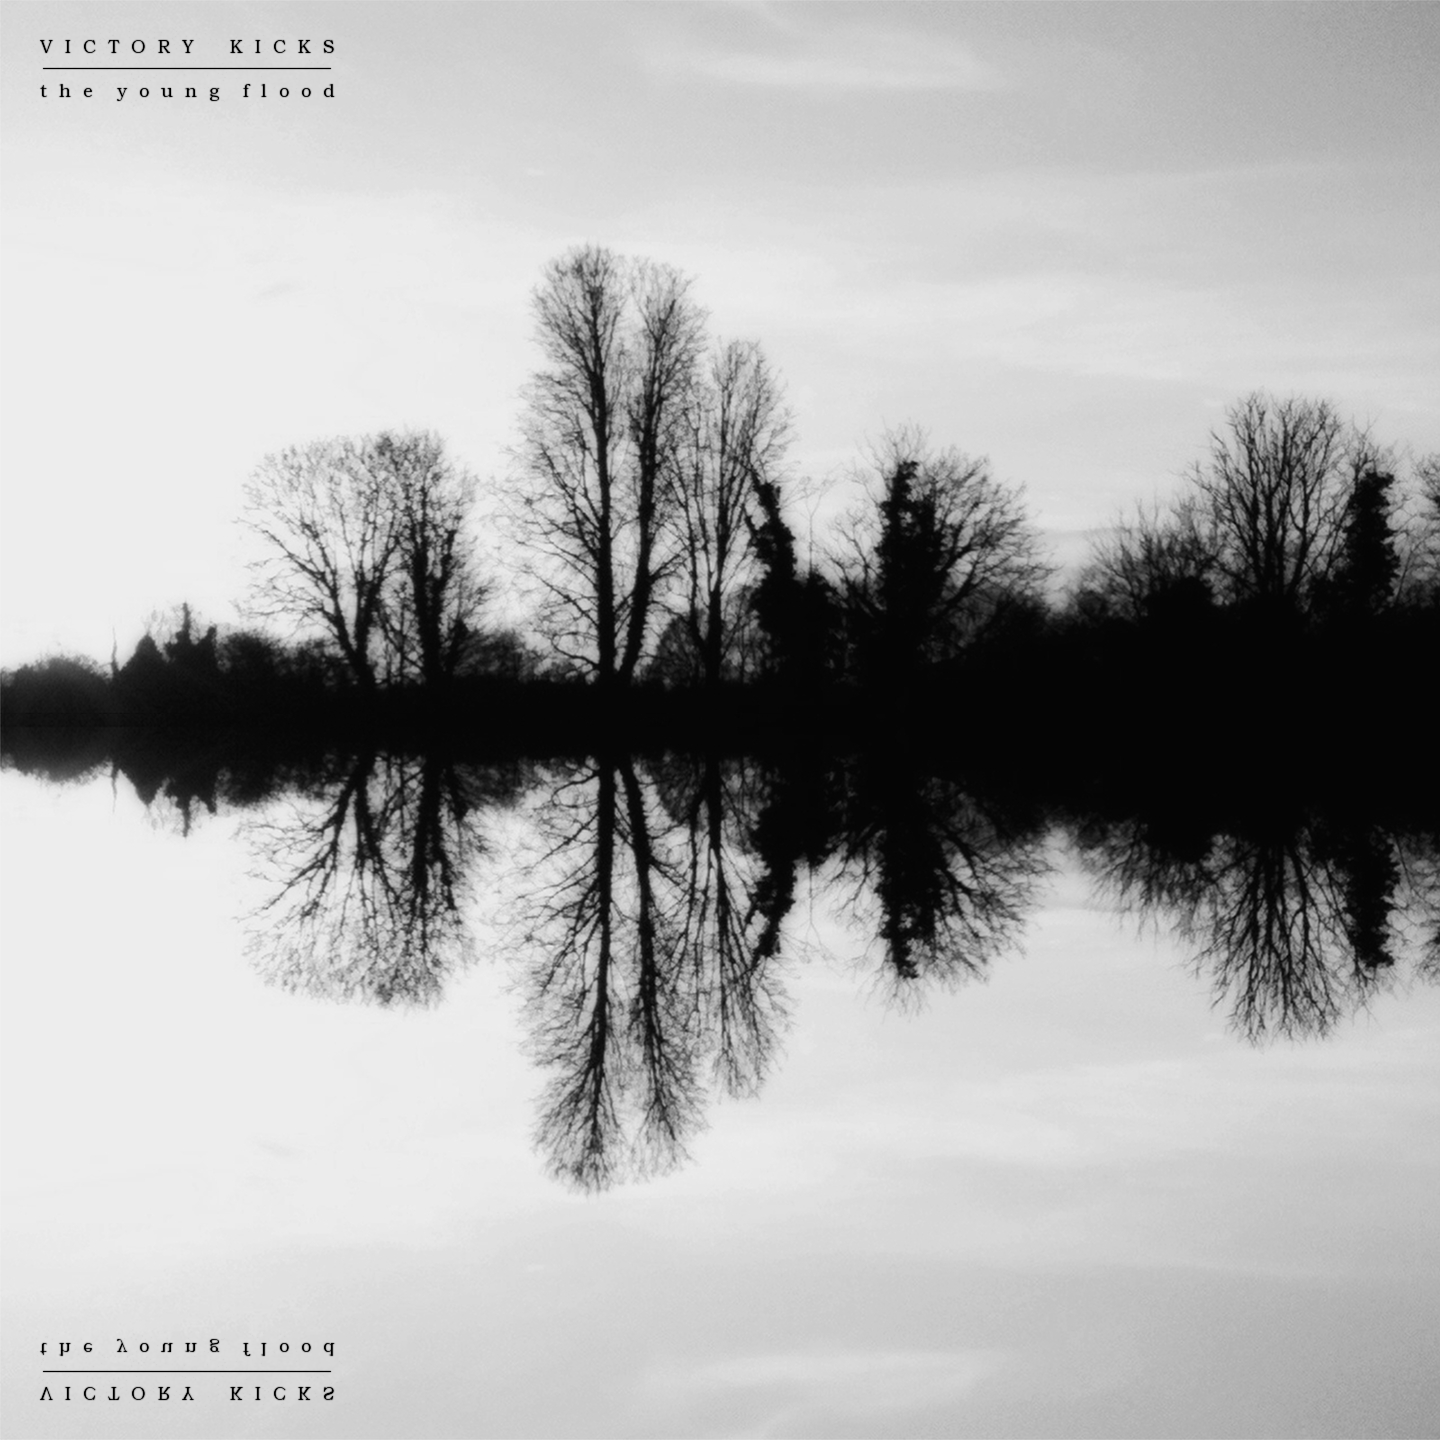 Featured Album: The Young Flood (EP)